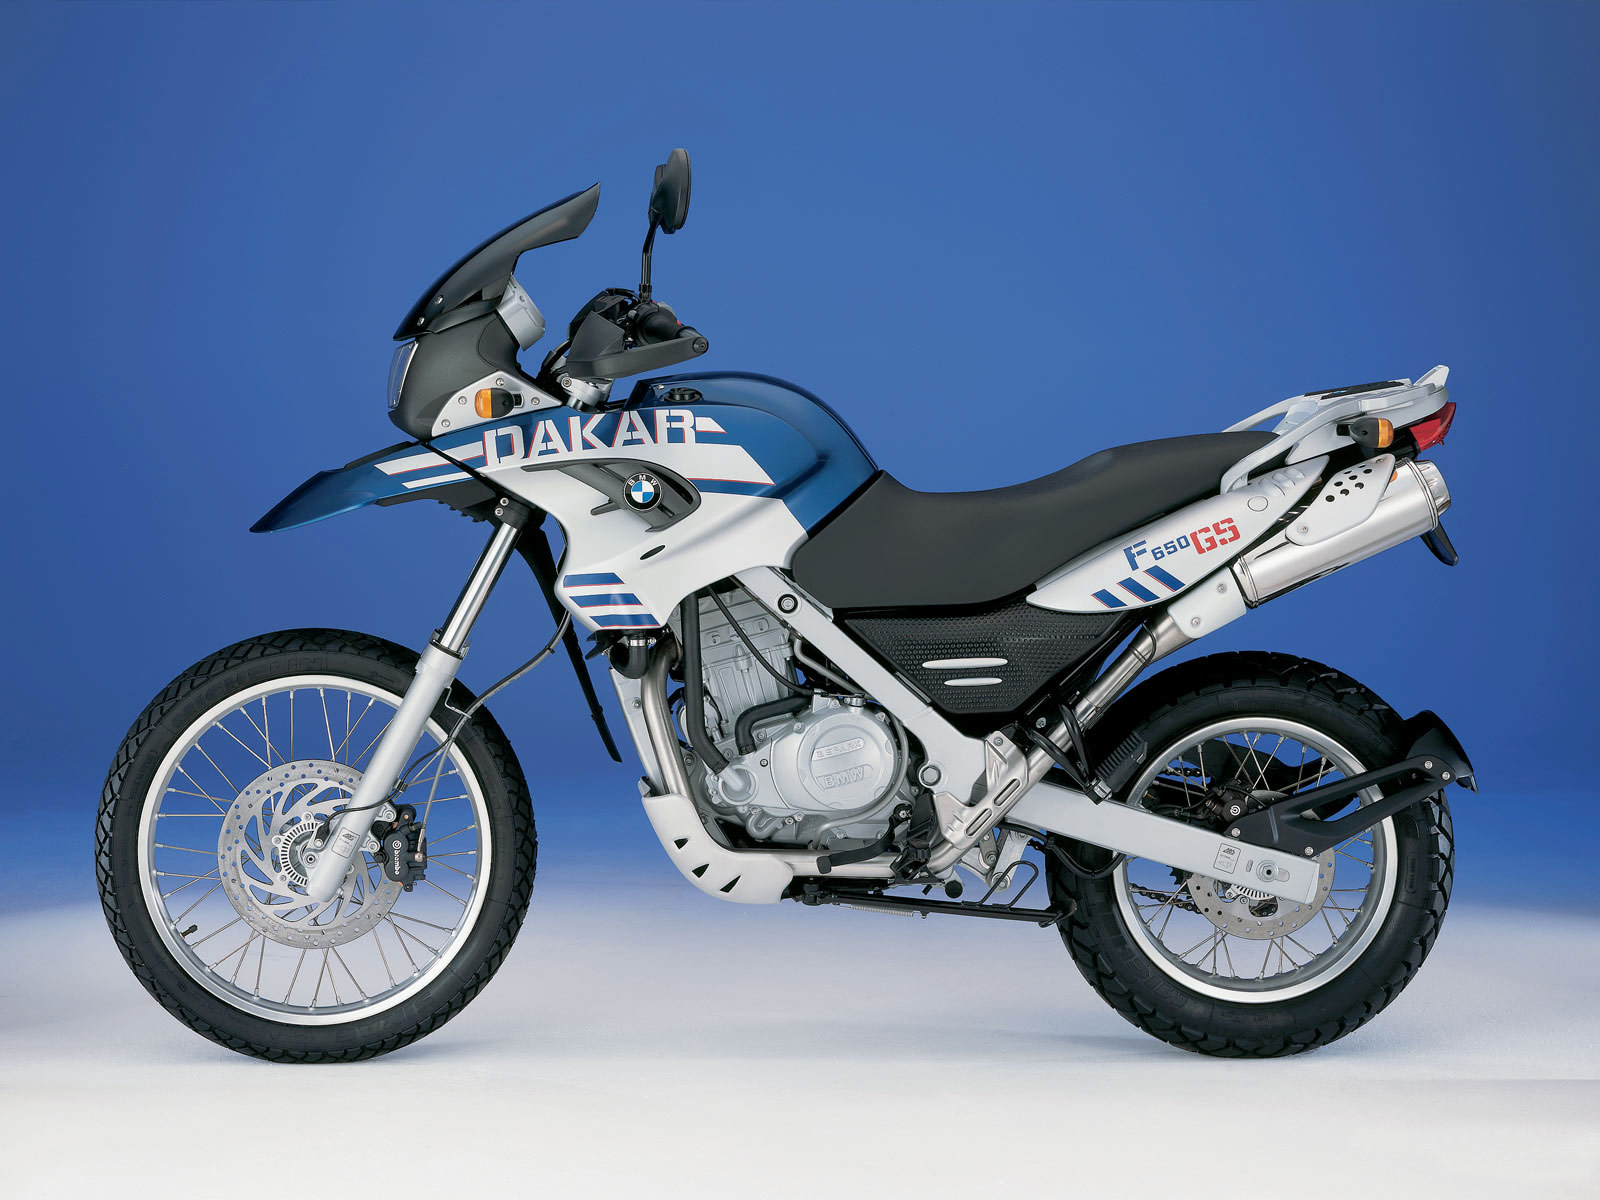 2004 bmw f650gs dakar insurance motorcycle wallpaper specs. Black Bedroom Furniture Sets. Home Design Ideas